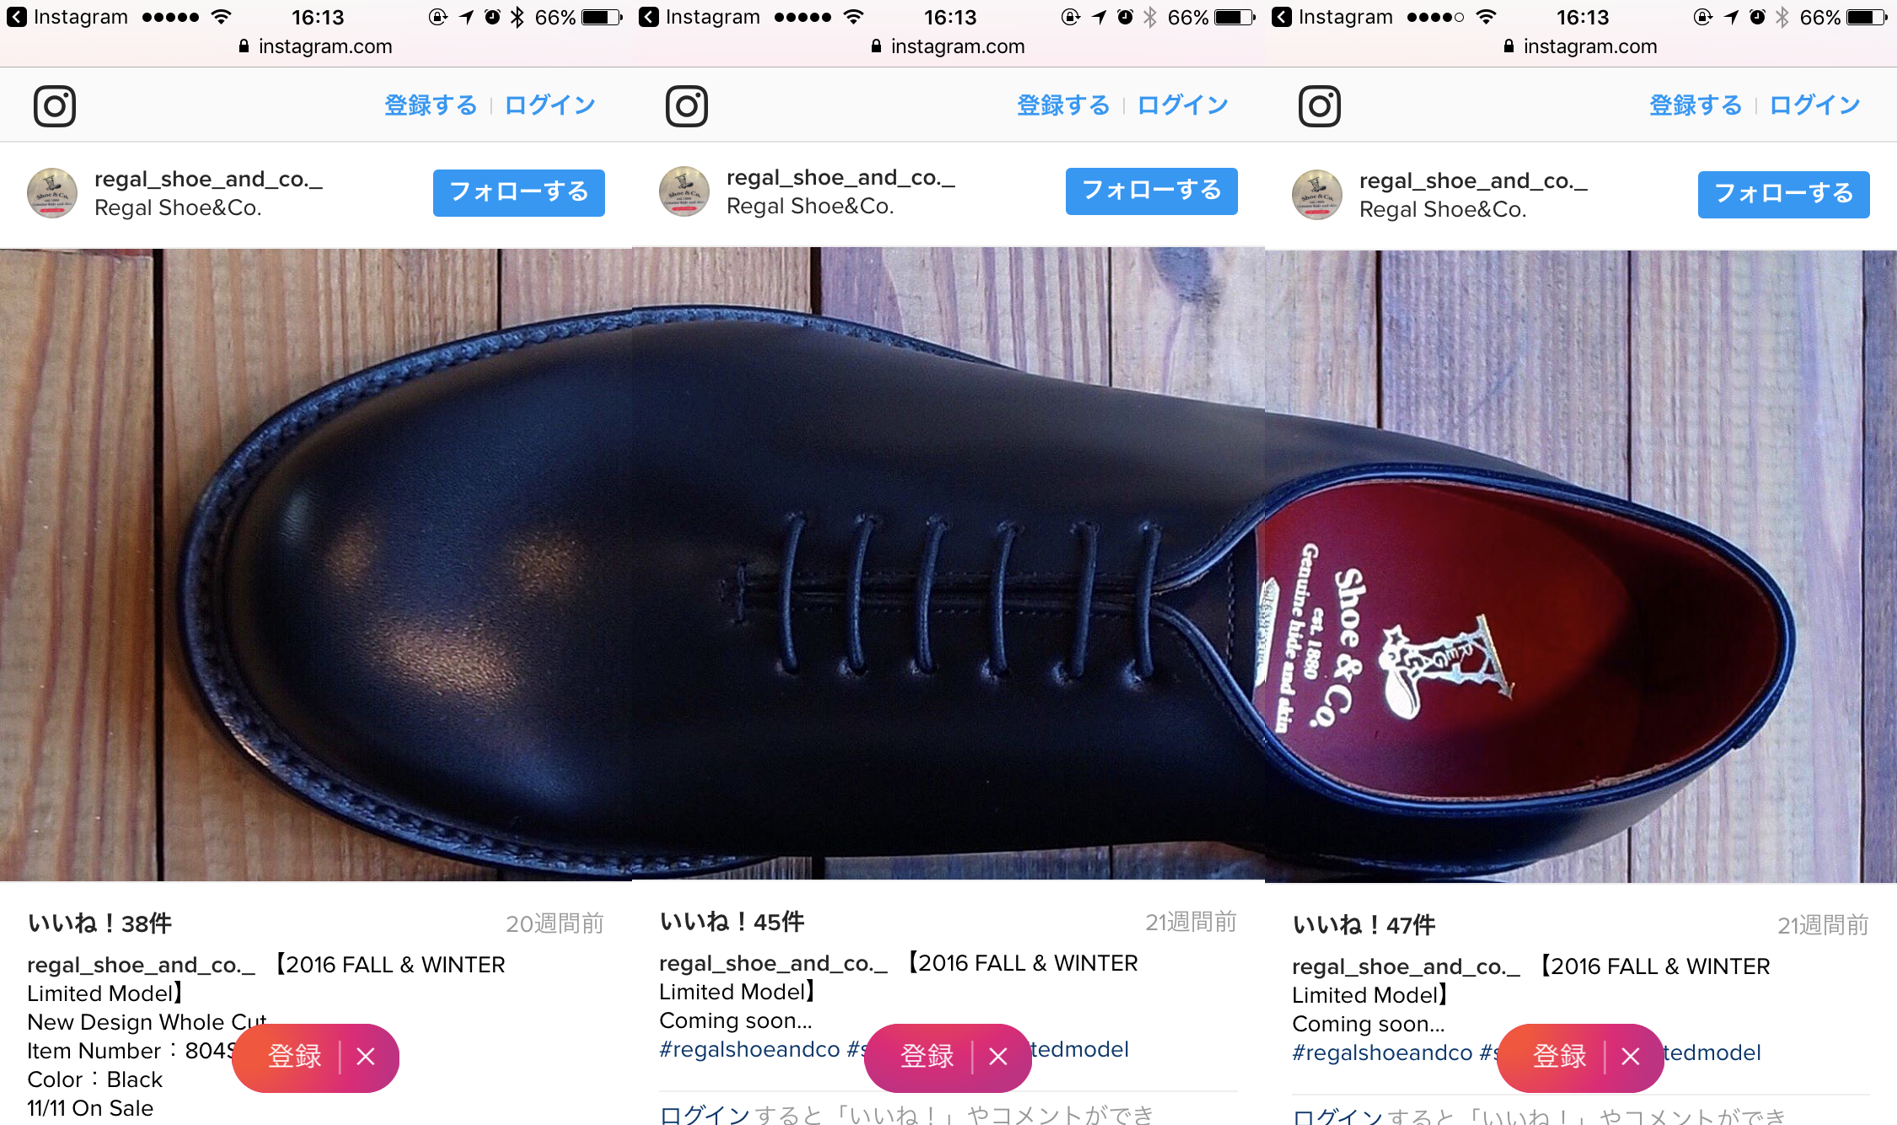 regal_shoe_and_co._